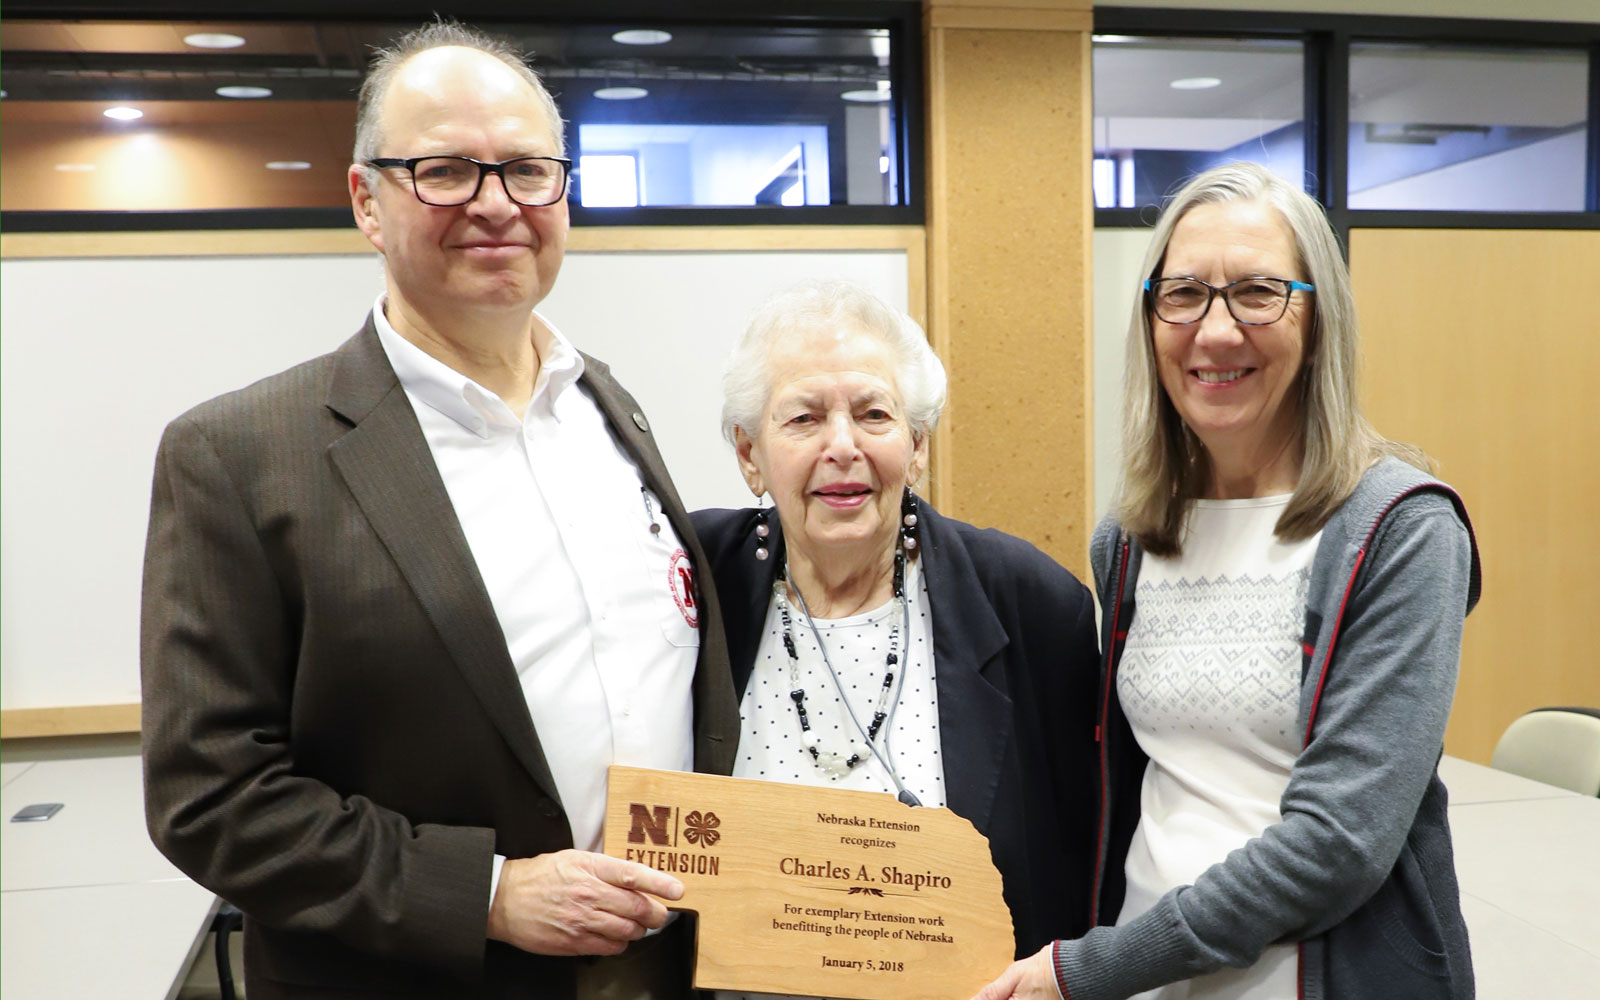 Charles Shapiro, from left, with his mother Edith Shapiro and wife Joan Sudmann Shapiro celebrate at the Department of Agronomy and Horticulture retirement reception held in his honor.